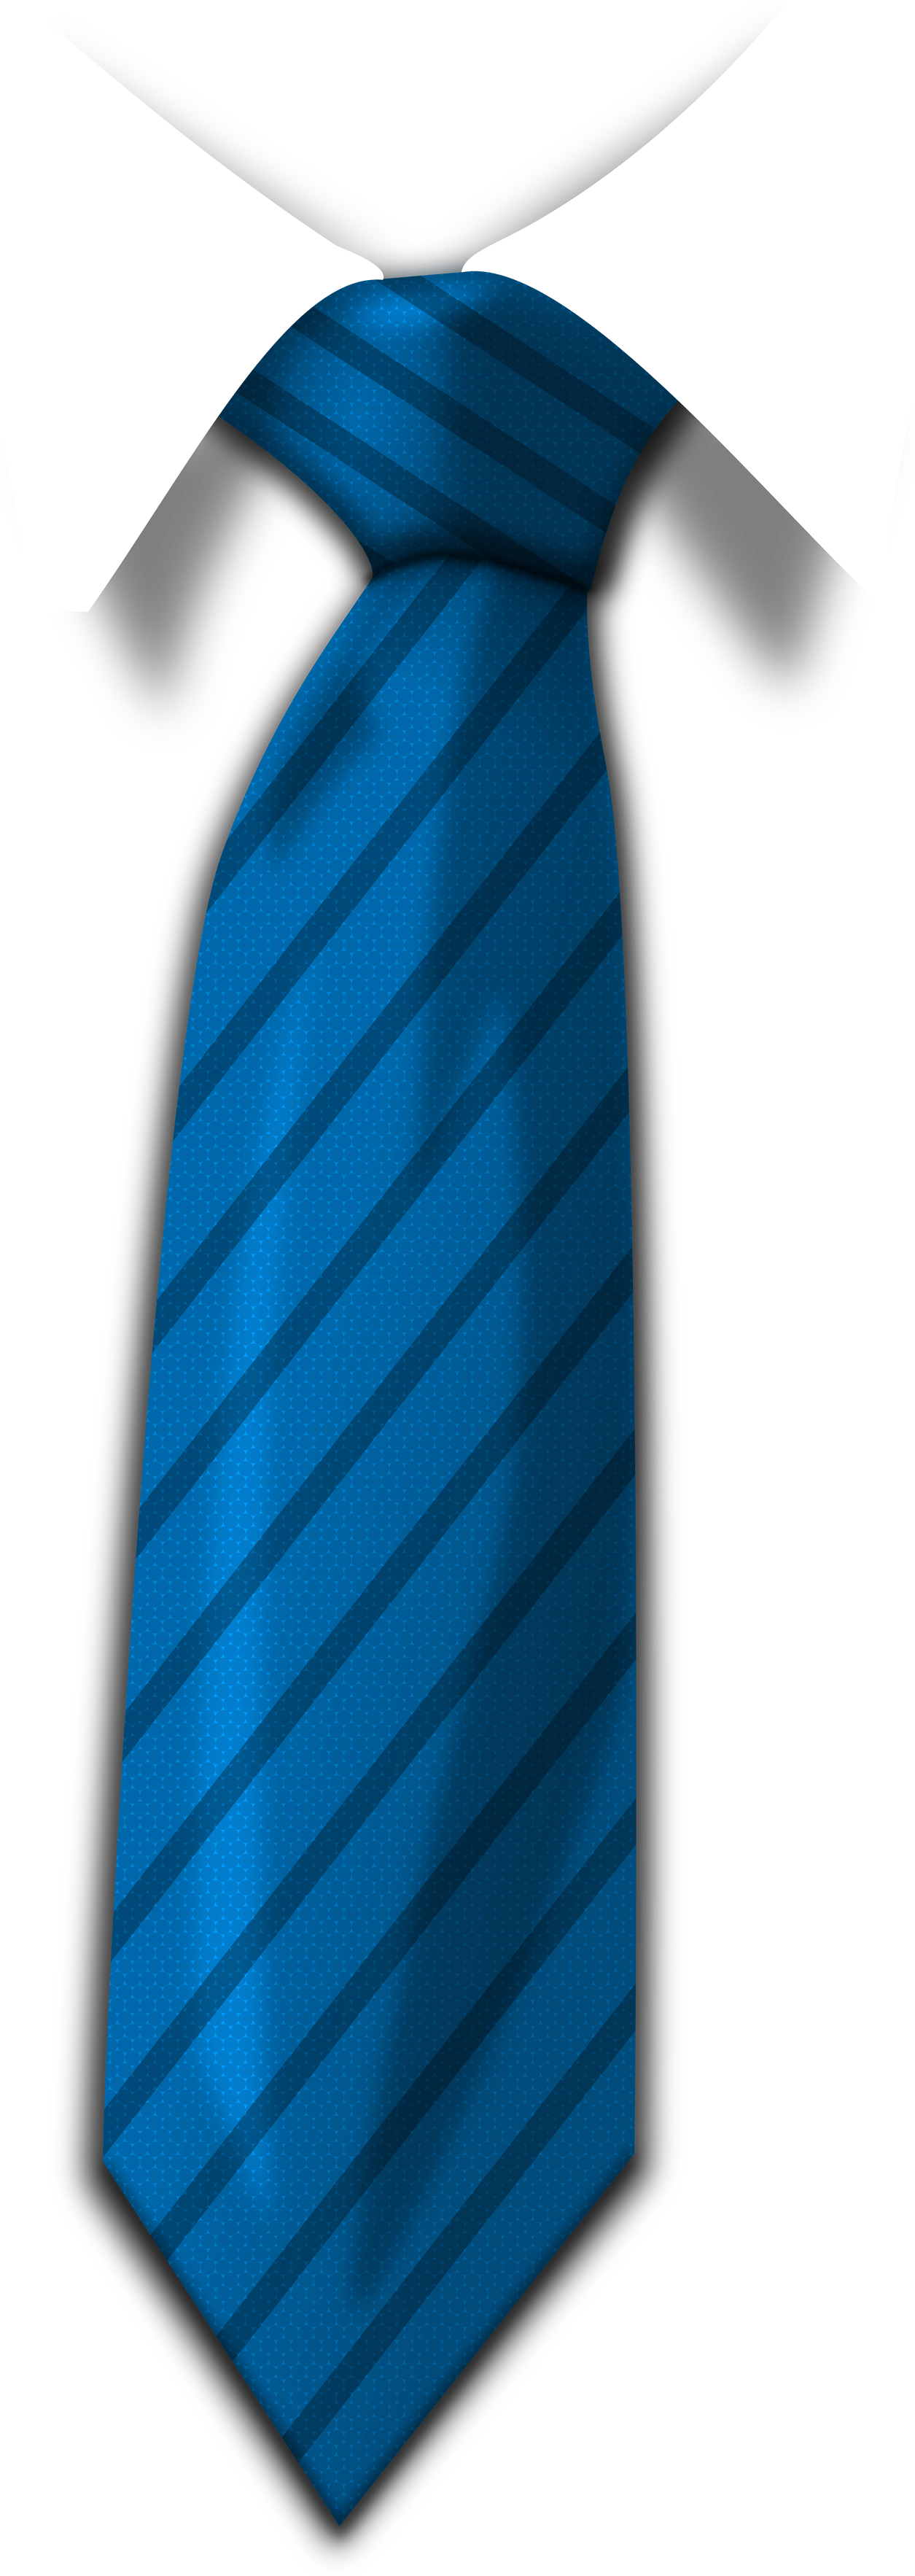 Blue tie png. Image free download